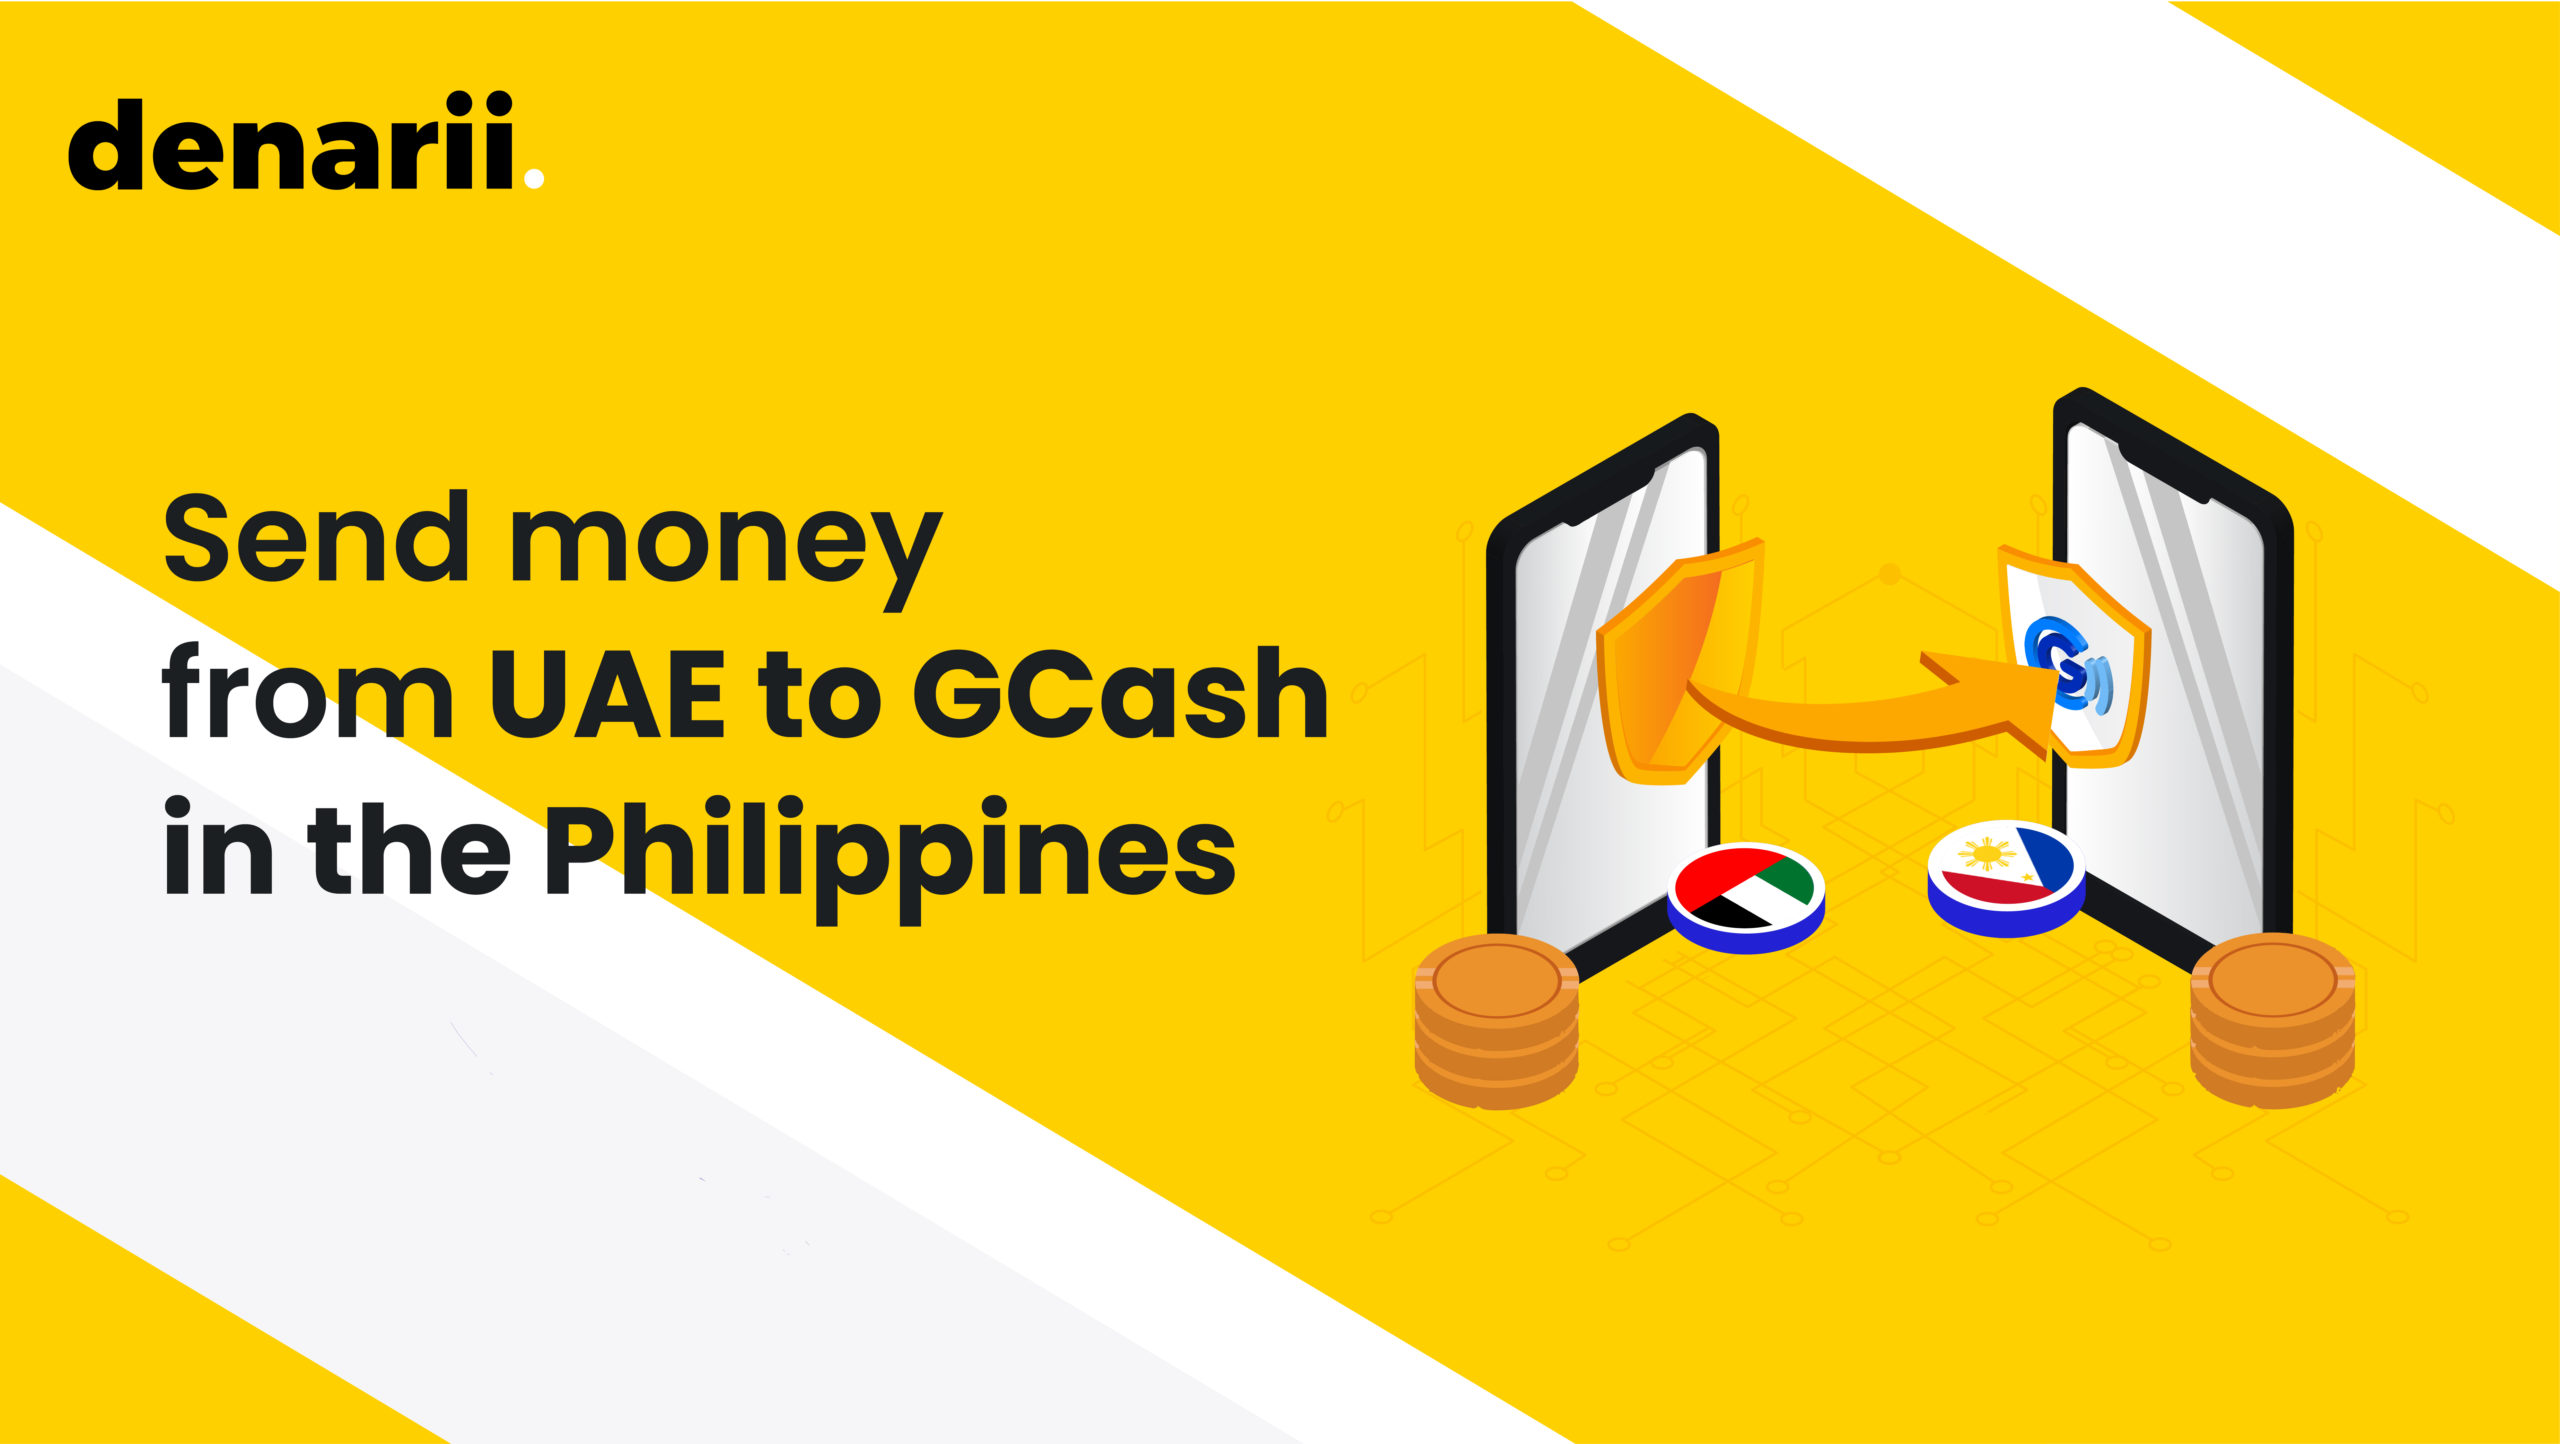 Send money from UAE to GCash in the Philippines